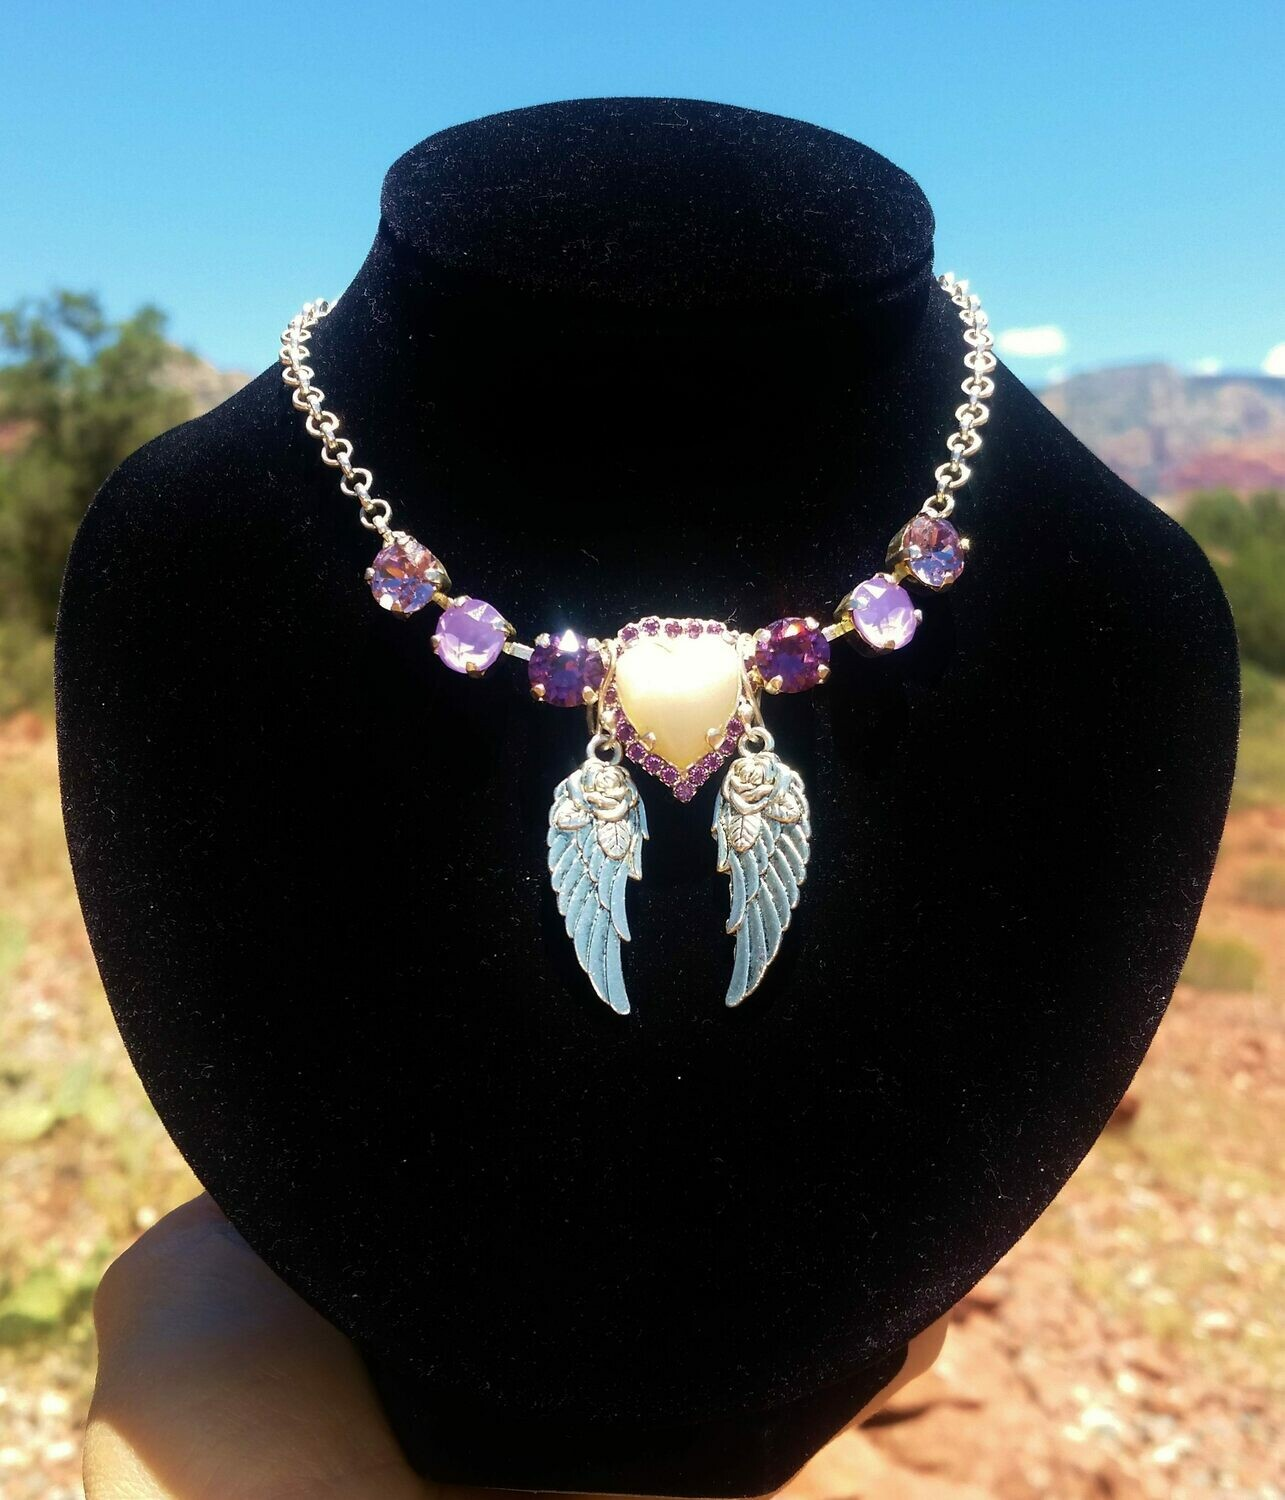 Sedona  Hearts of Mother Earth Gaia/Sophia Rose Priestess & Violet Ray Healer Angels  $244.00/444.00